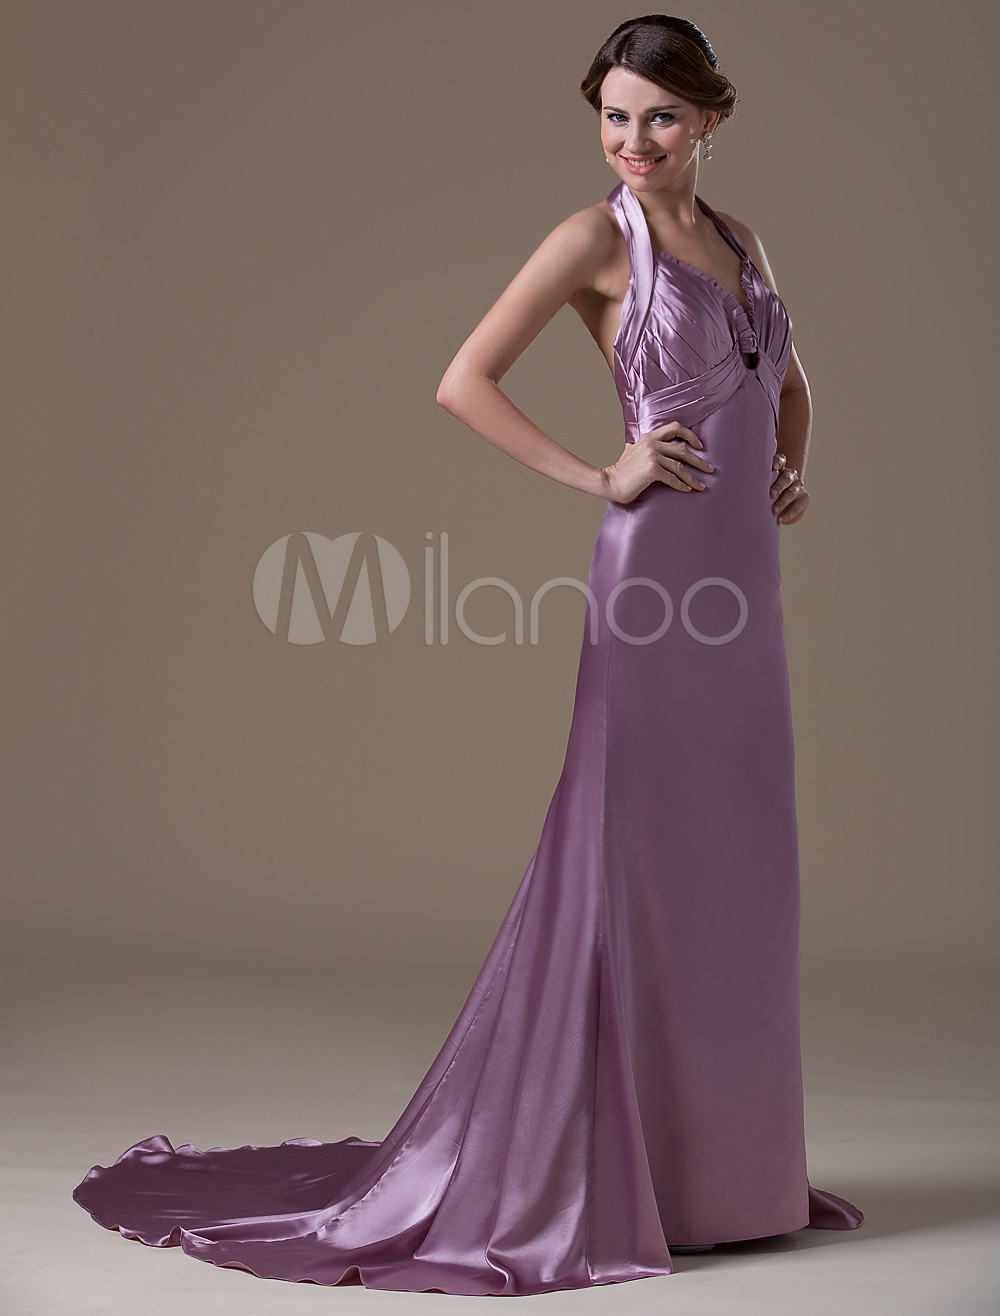 Light Purple A-line Halter Spandex Satin Floor-length Maternity Bridesmaid Dress